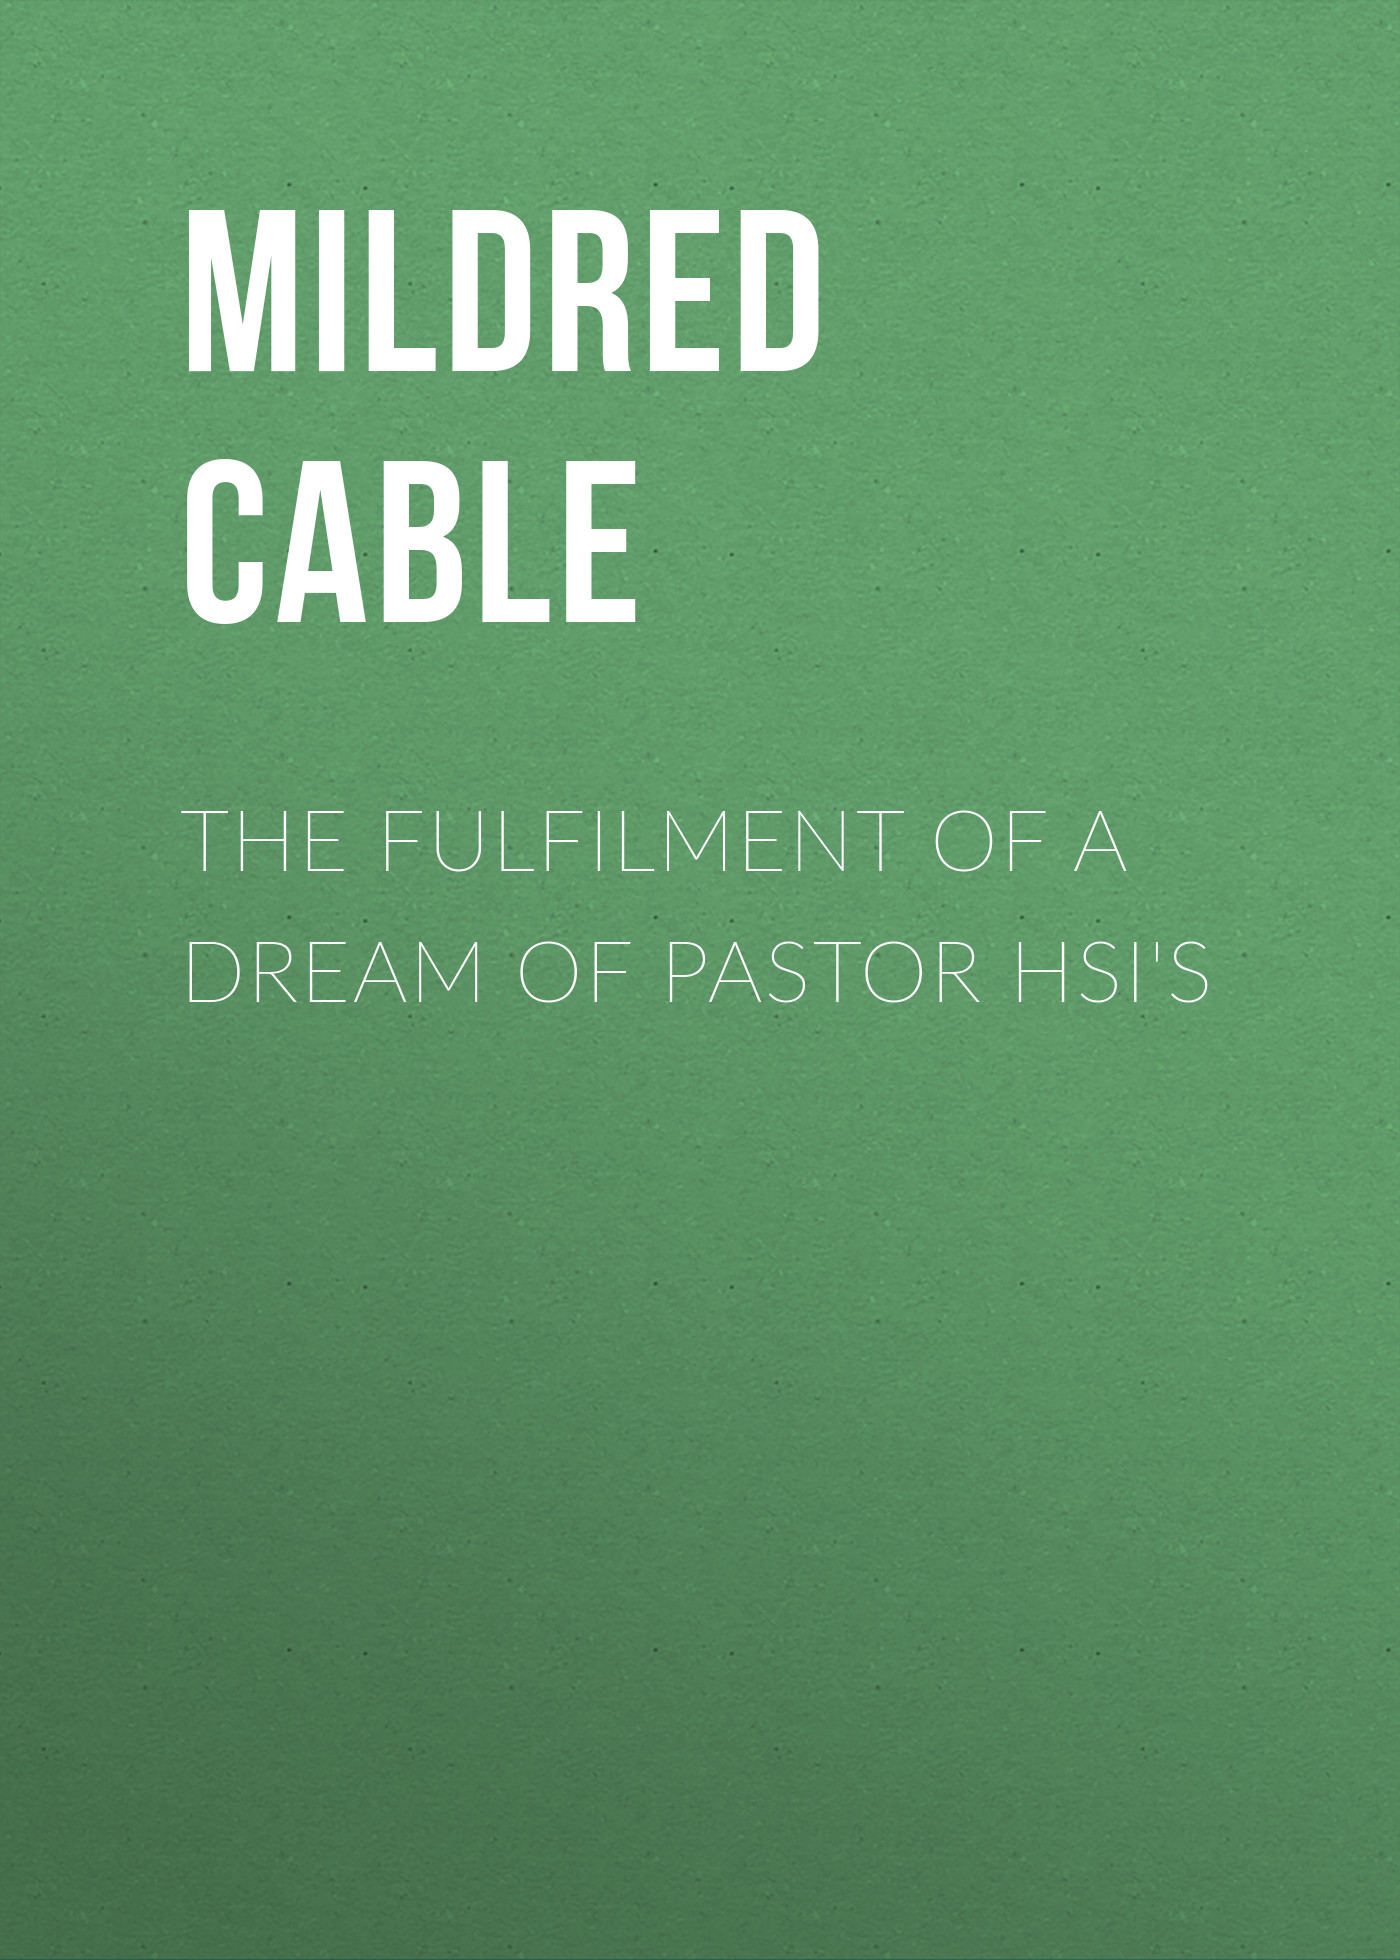 Cable Mildred The Fulfilment of a Dream of Pastor Hsi's морган райс a dream of mortals